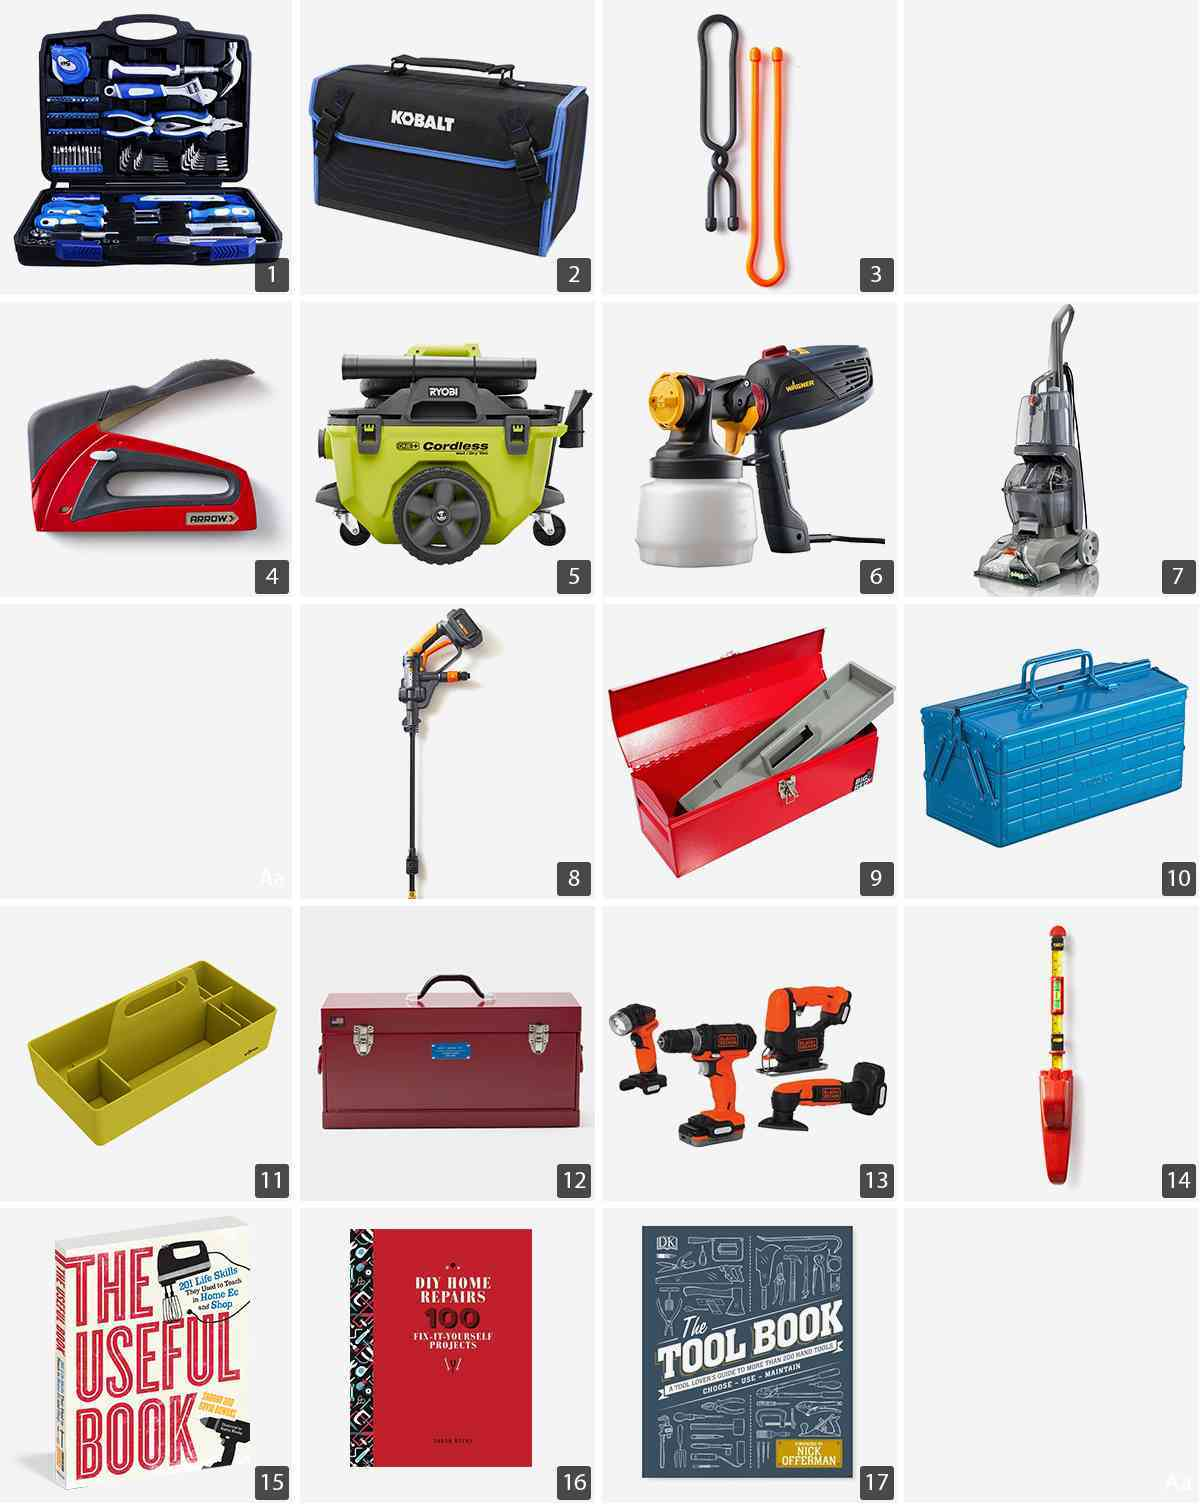 Collage of tools including kits, vacuums, boxes, and books photo